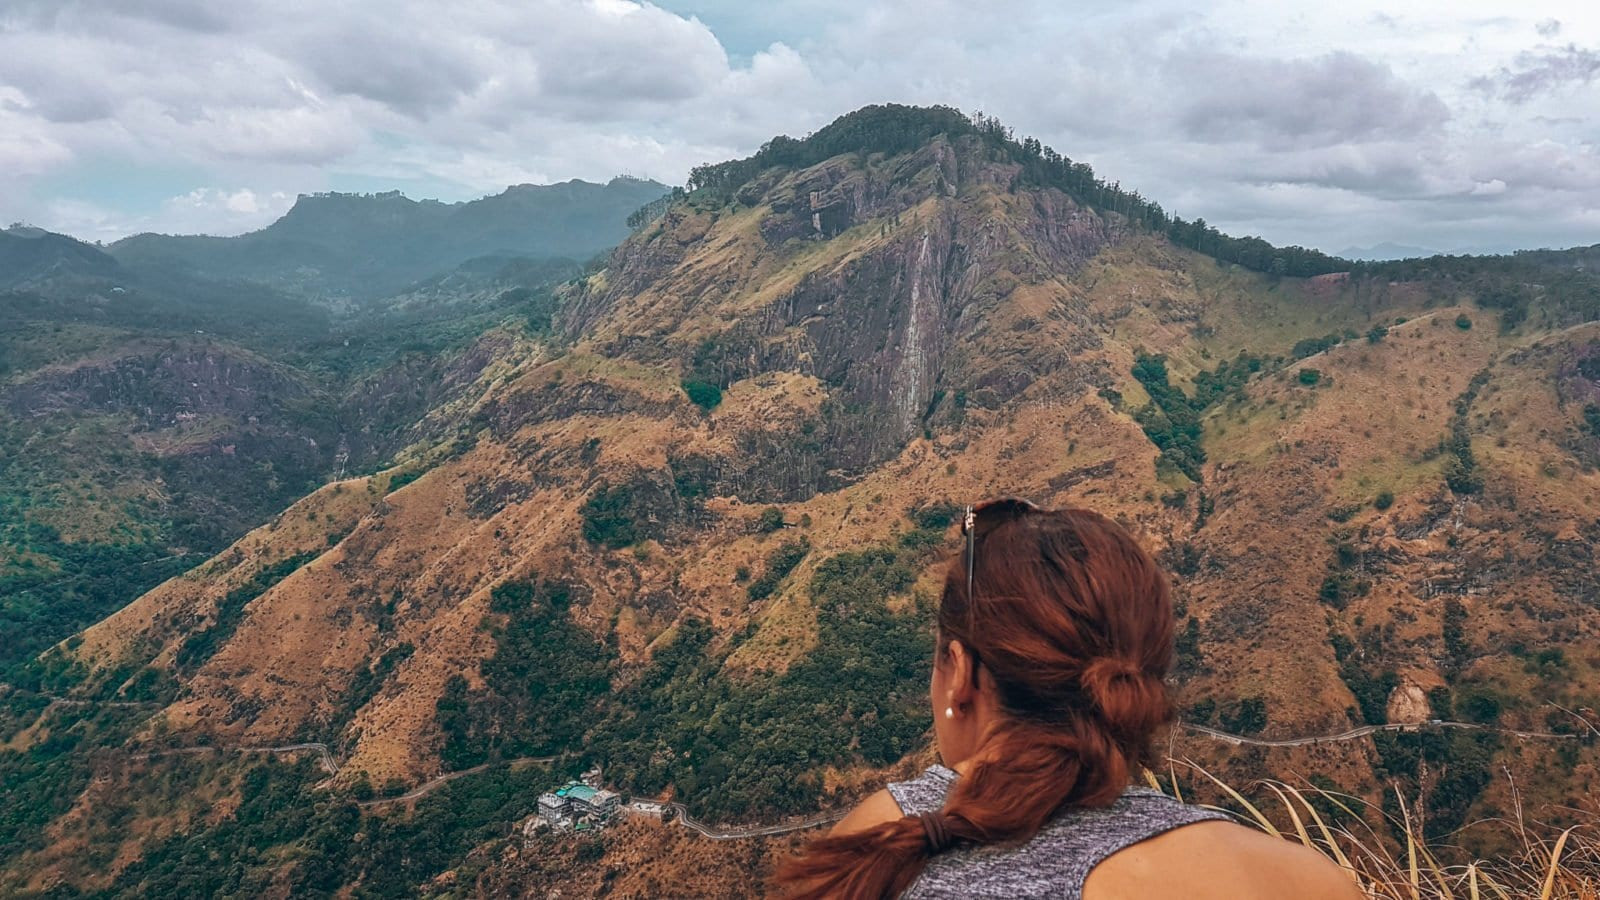 A sort hike from 98 acres hotel, looking out over Little Adams Peak